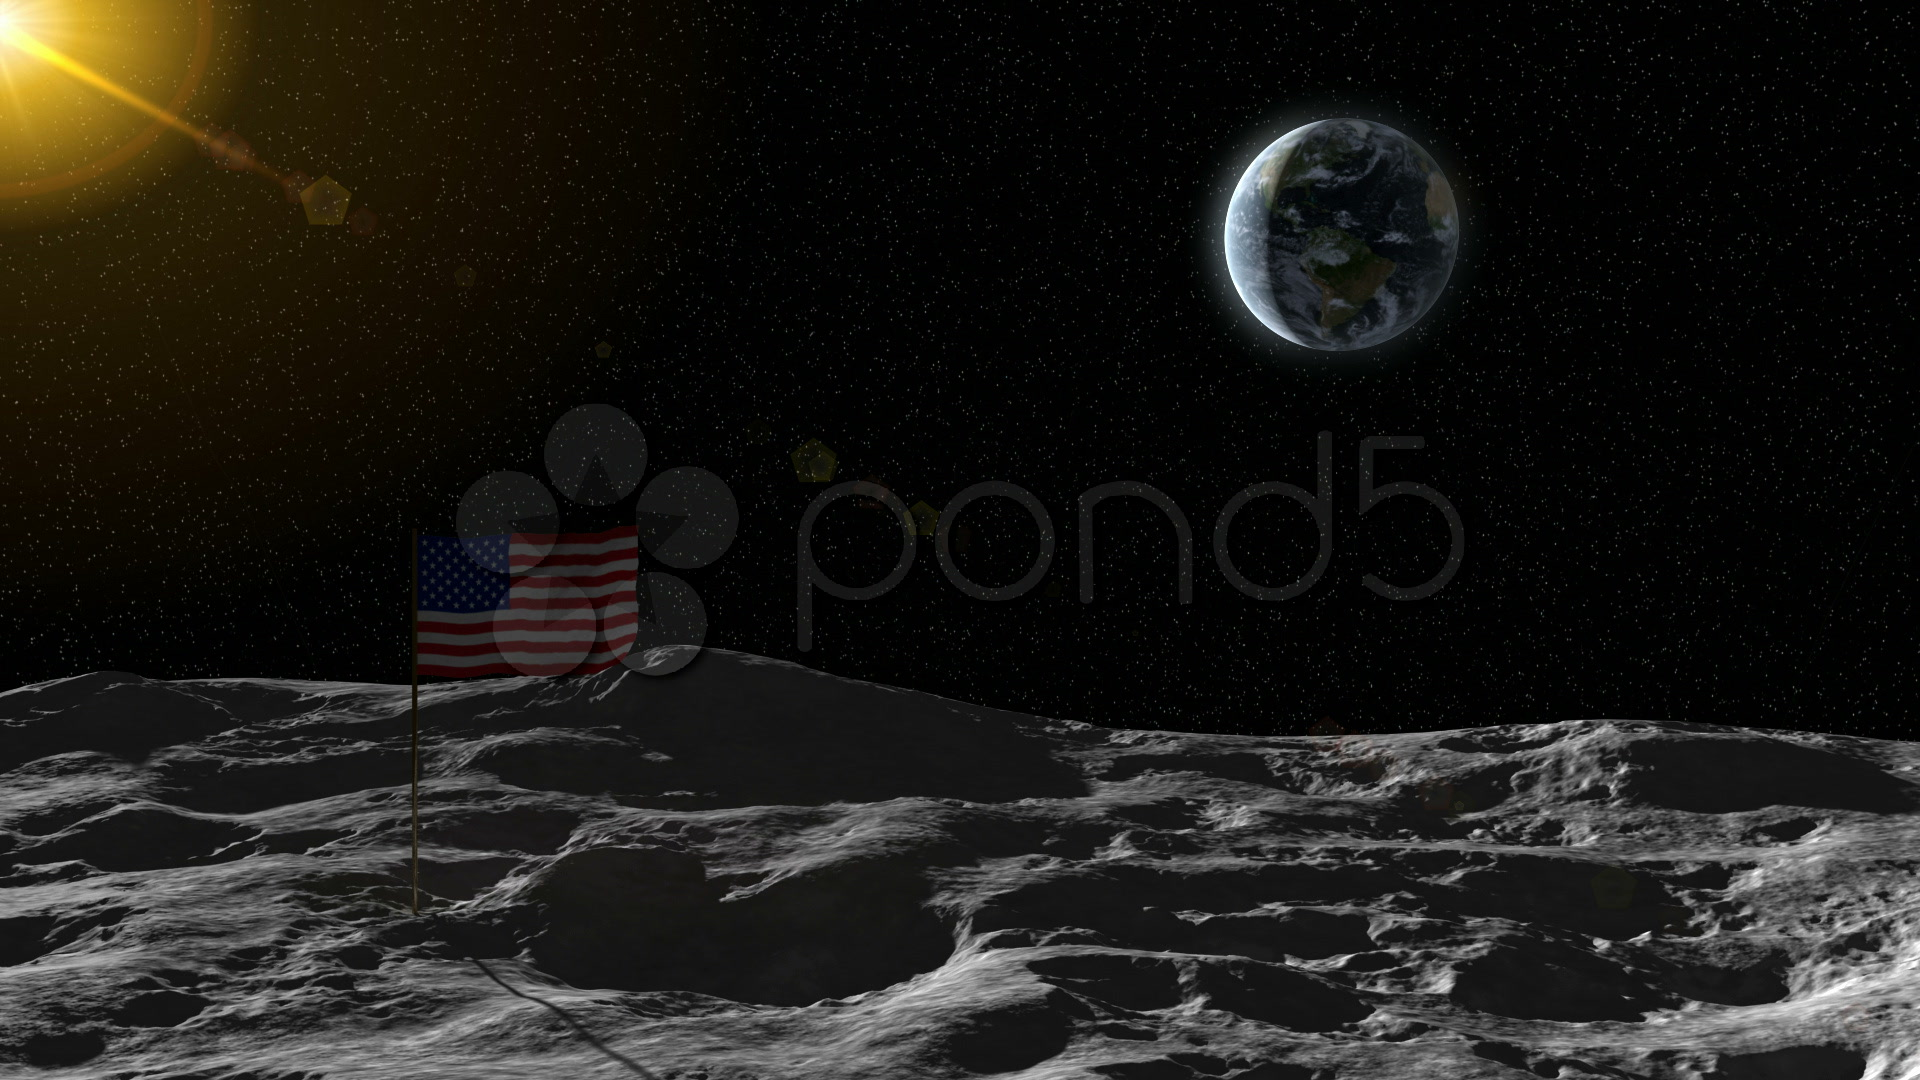 The Earth seen from the moon with an American flag moon ...